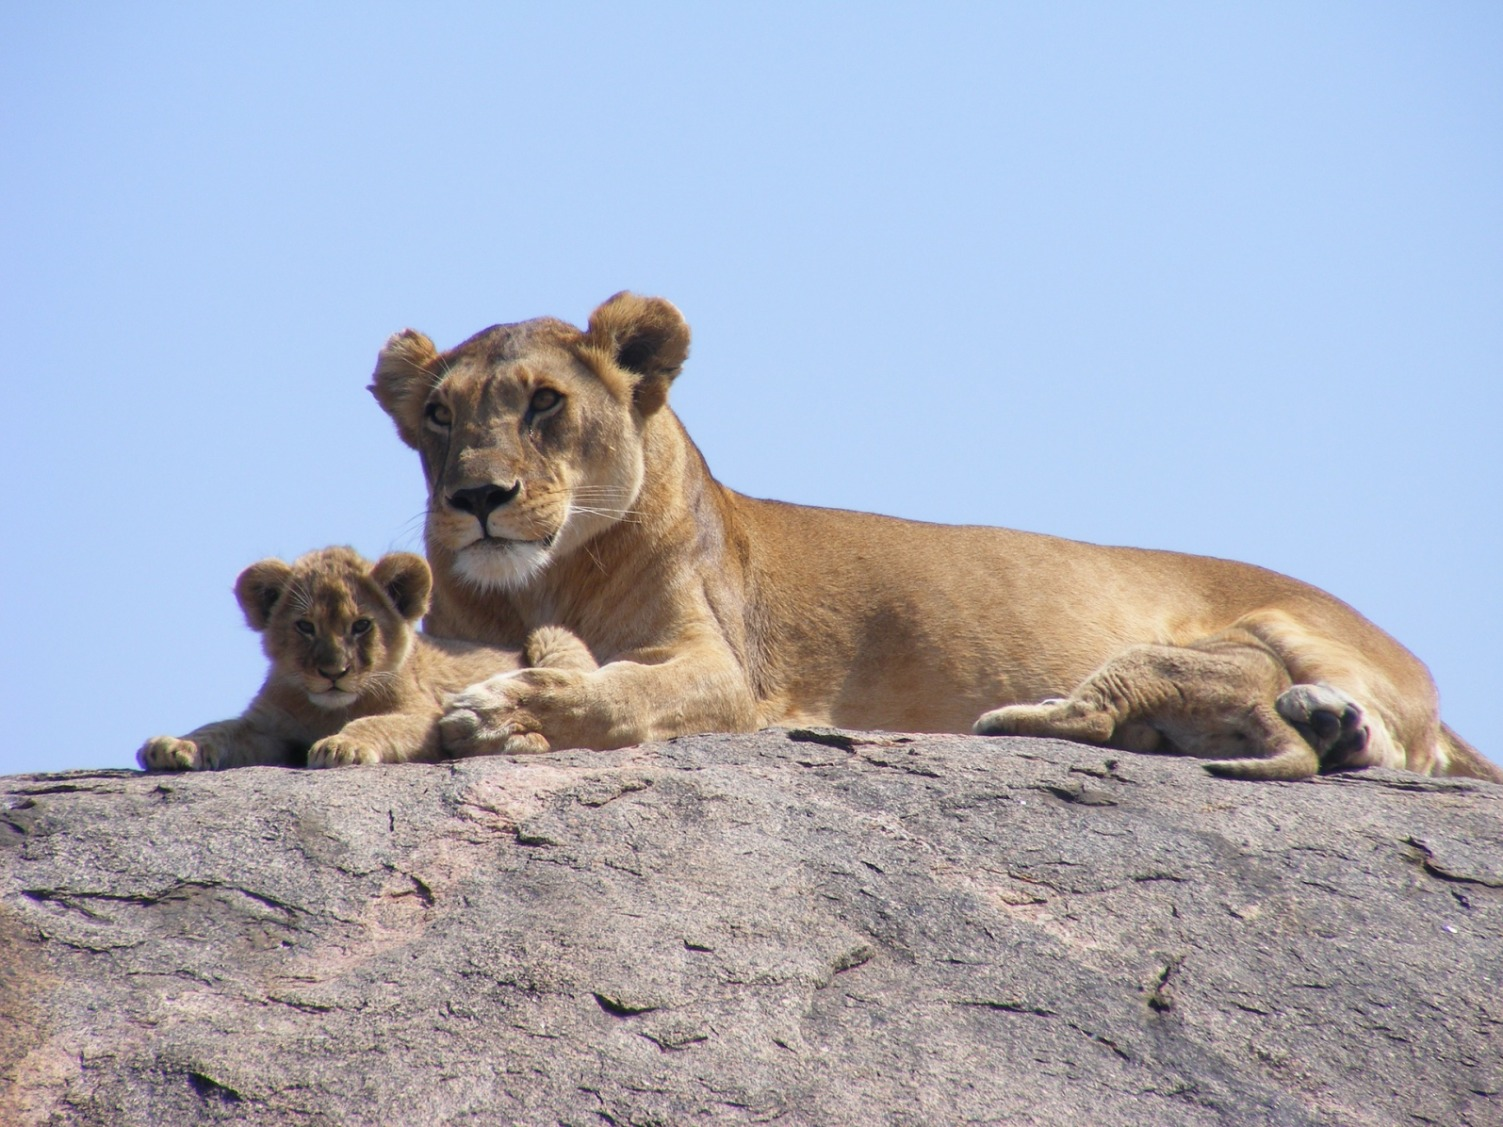 Lions Lying on the Rock - Original image